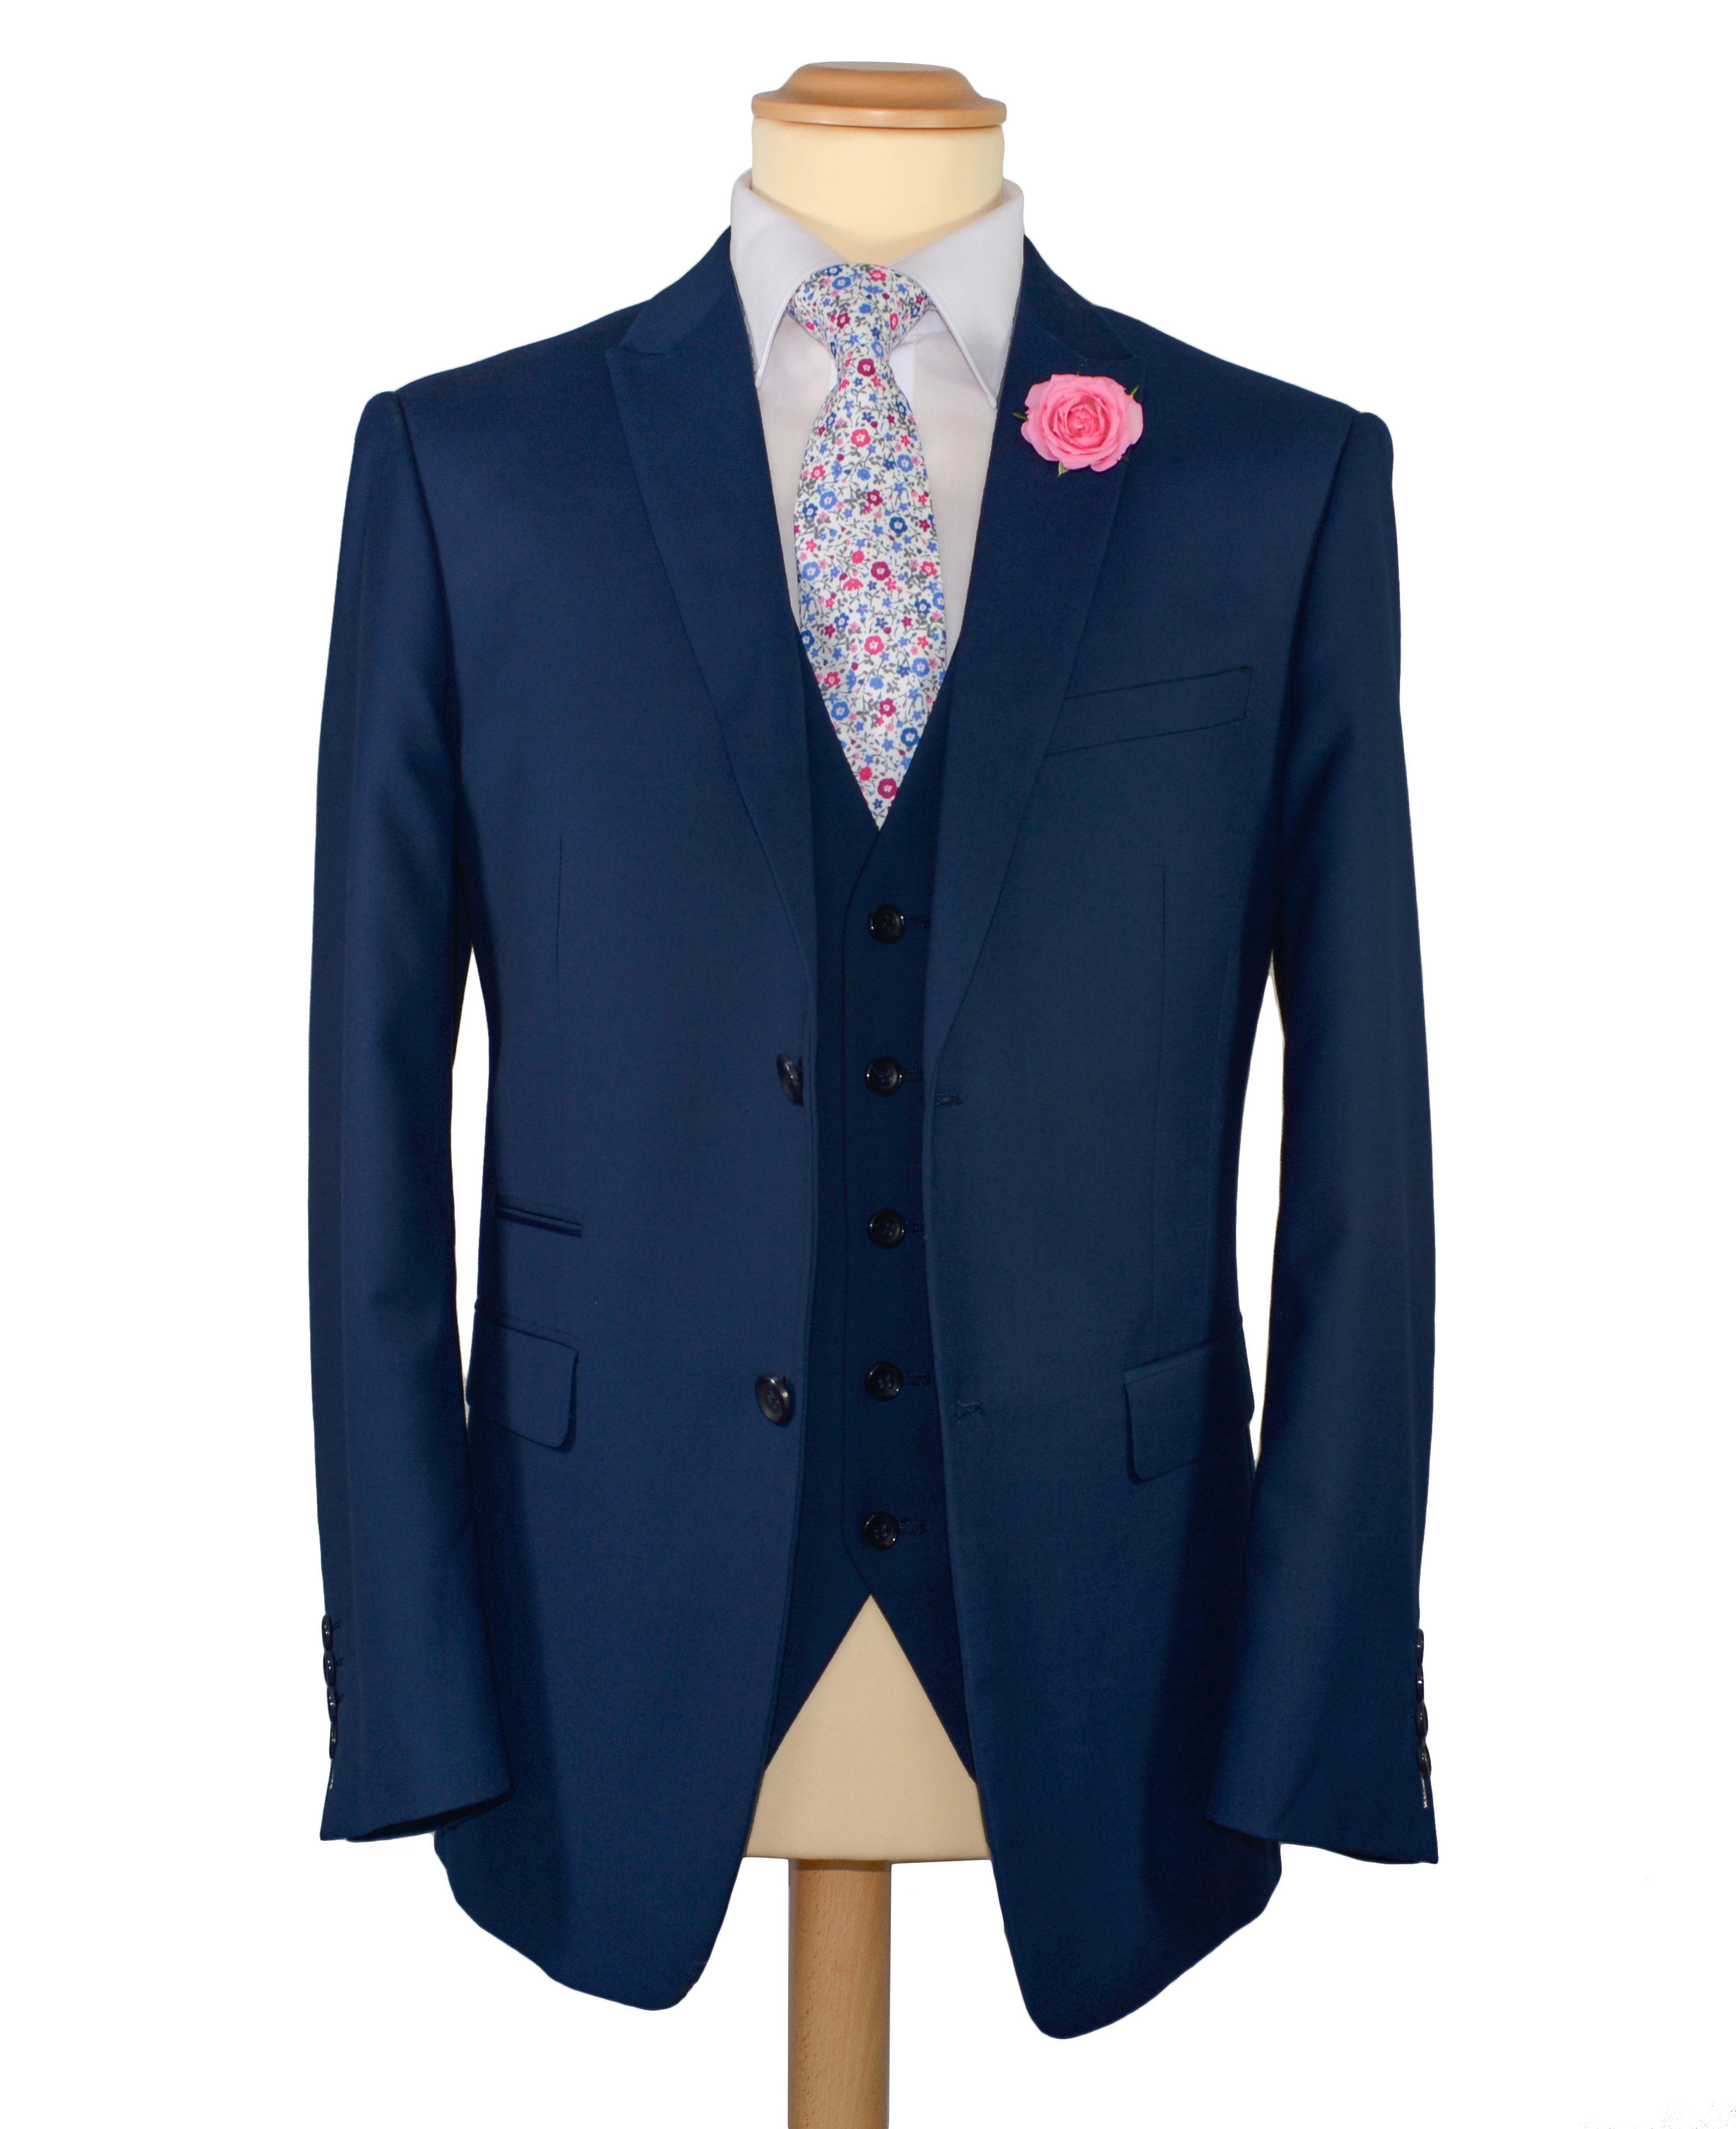 French Blue Suit (Hire or Buy)